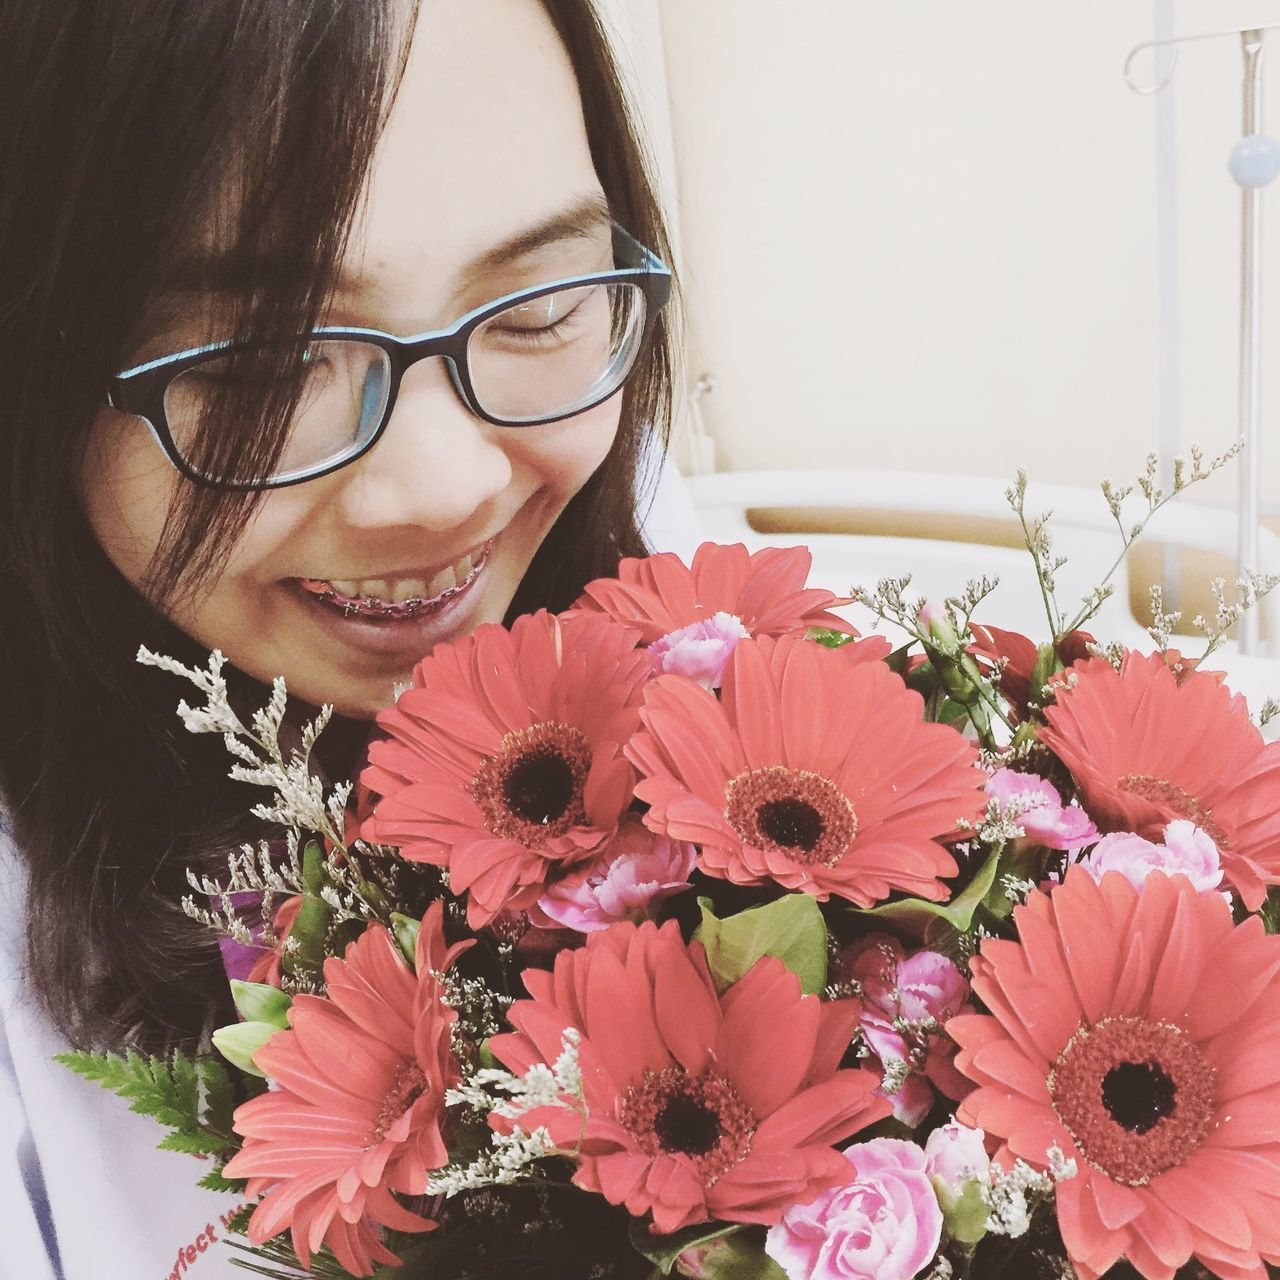 Smiling Girl With Braces On Her Teeth Holding Bouquet